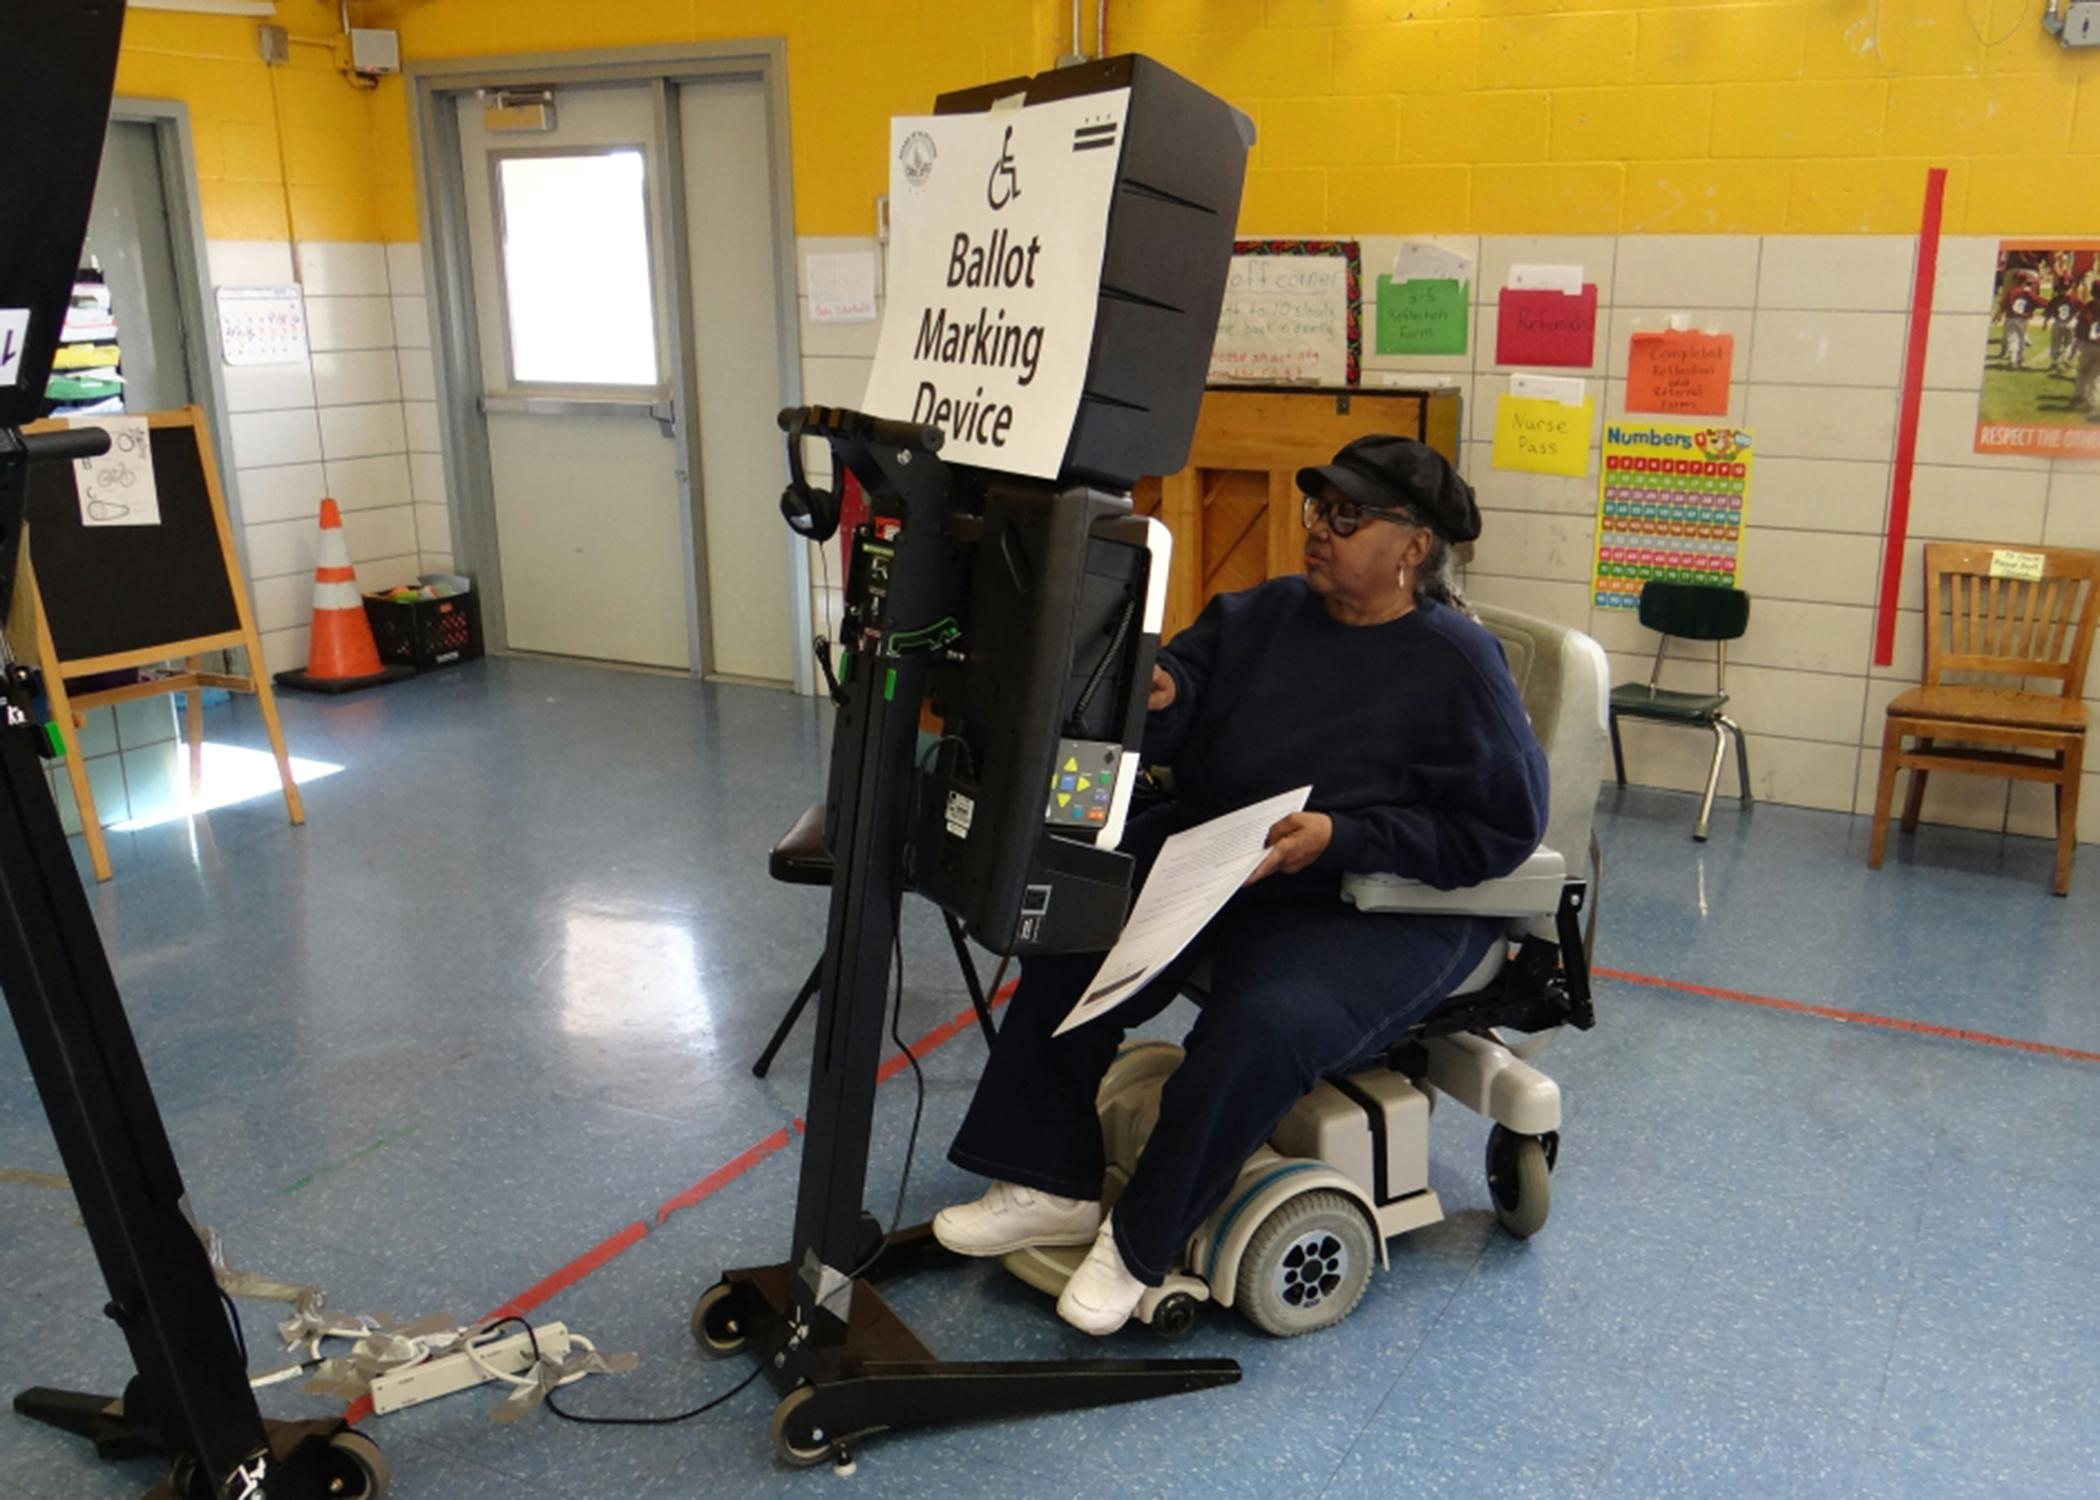 A voter making her choice at a polling station in Washington D.C. during the general elections, November 8, 2016.Photo credit: Thomas Rymer / OSCE (CC BY-ND 4.0)